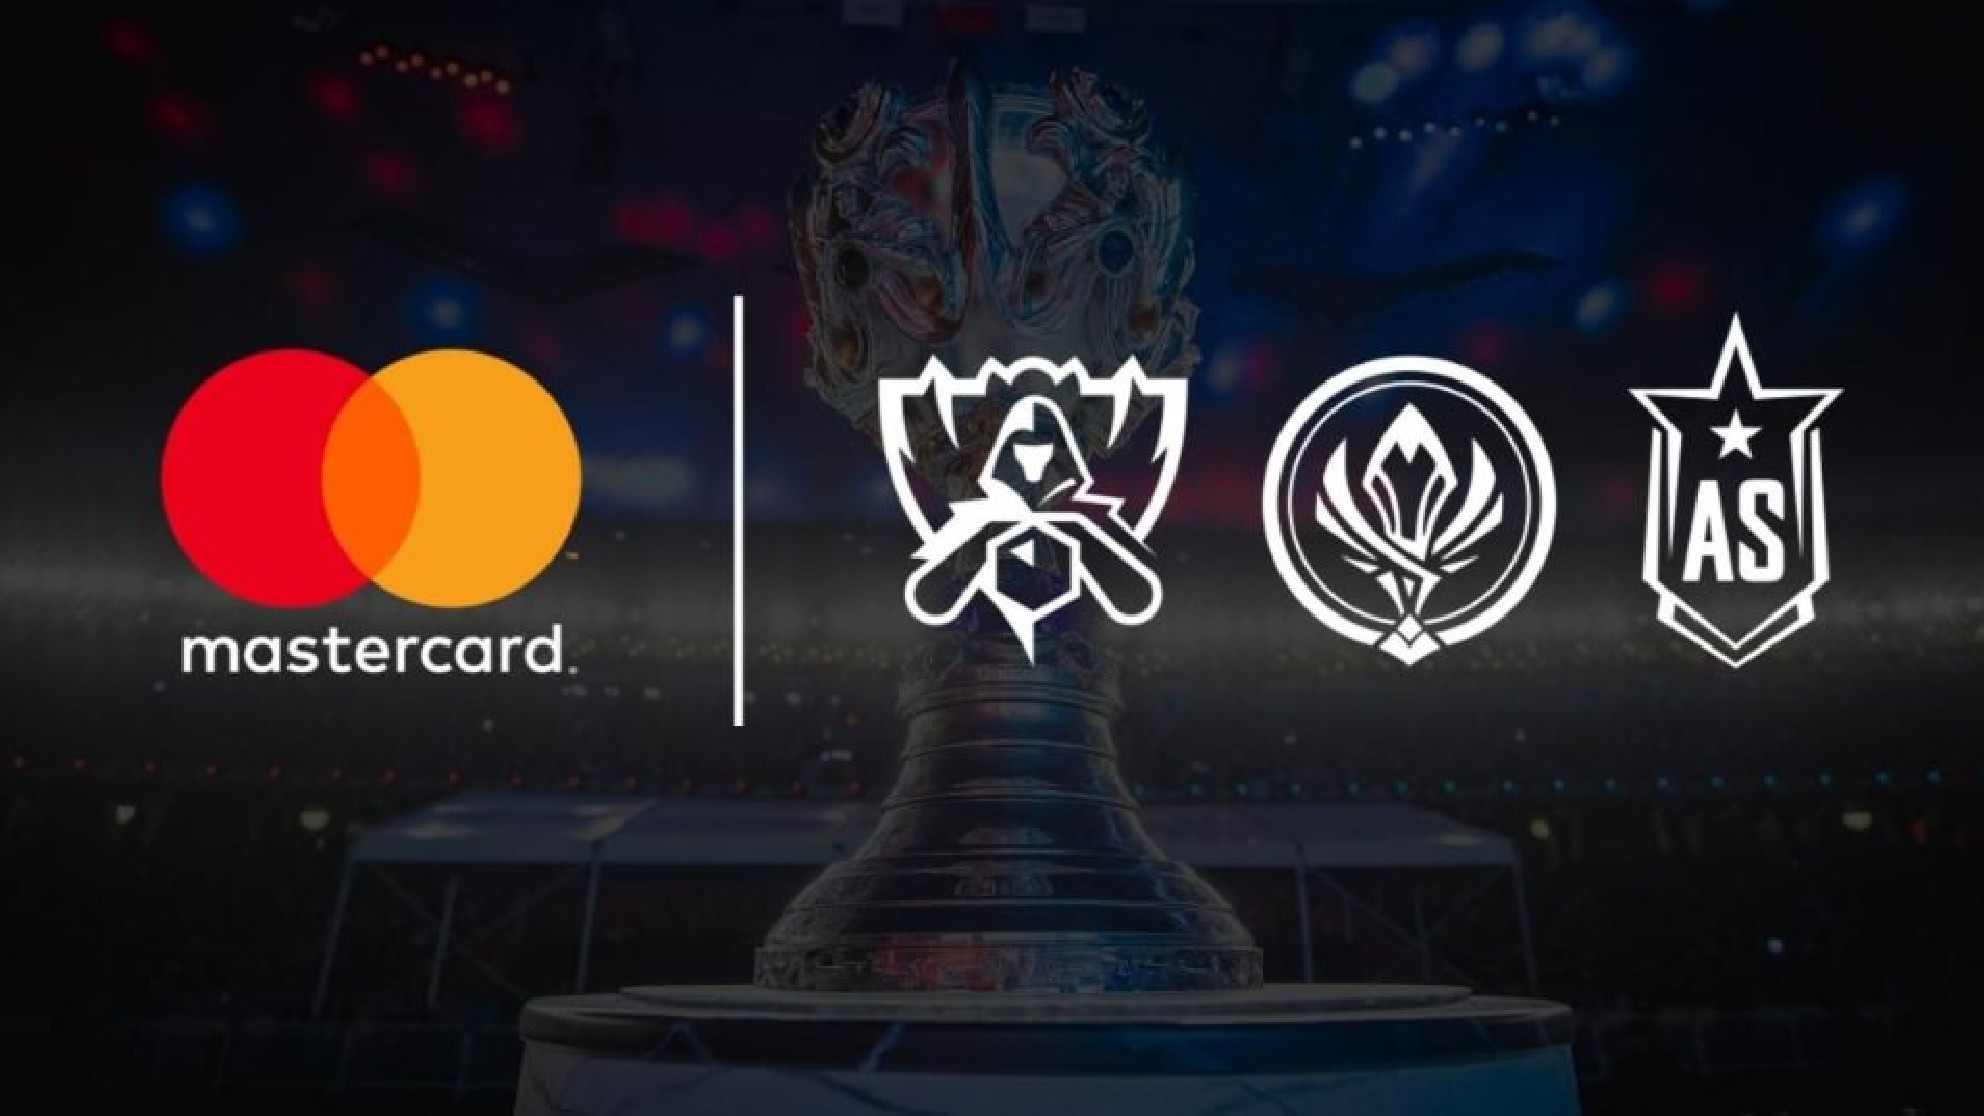 Mastercard signs with League of Legends as a first global partner